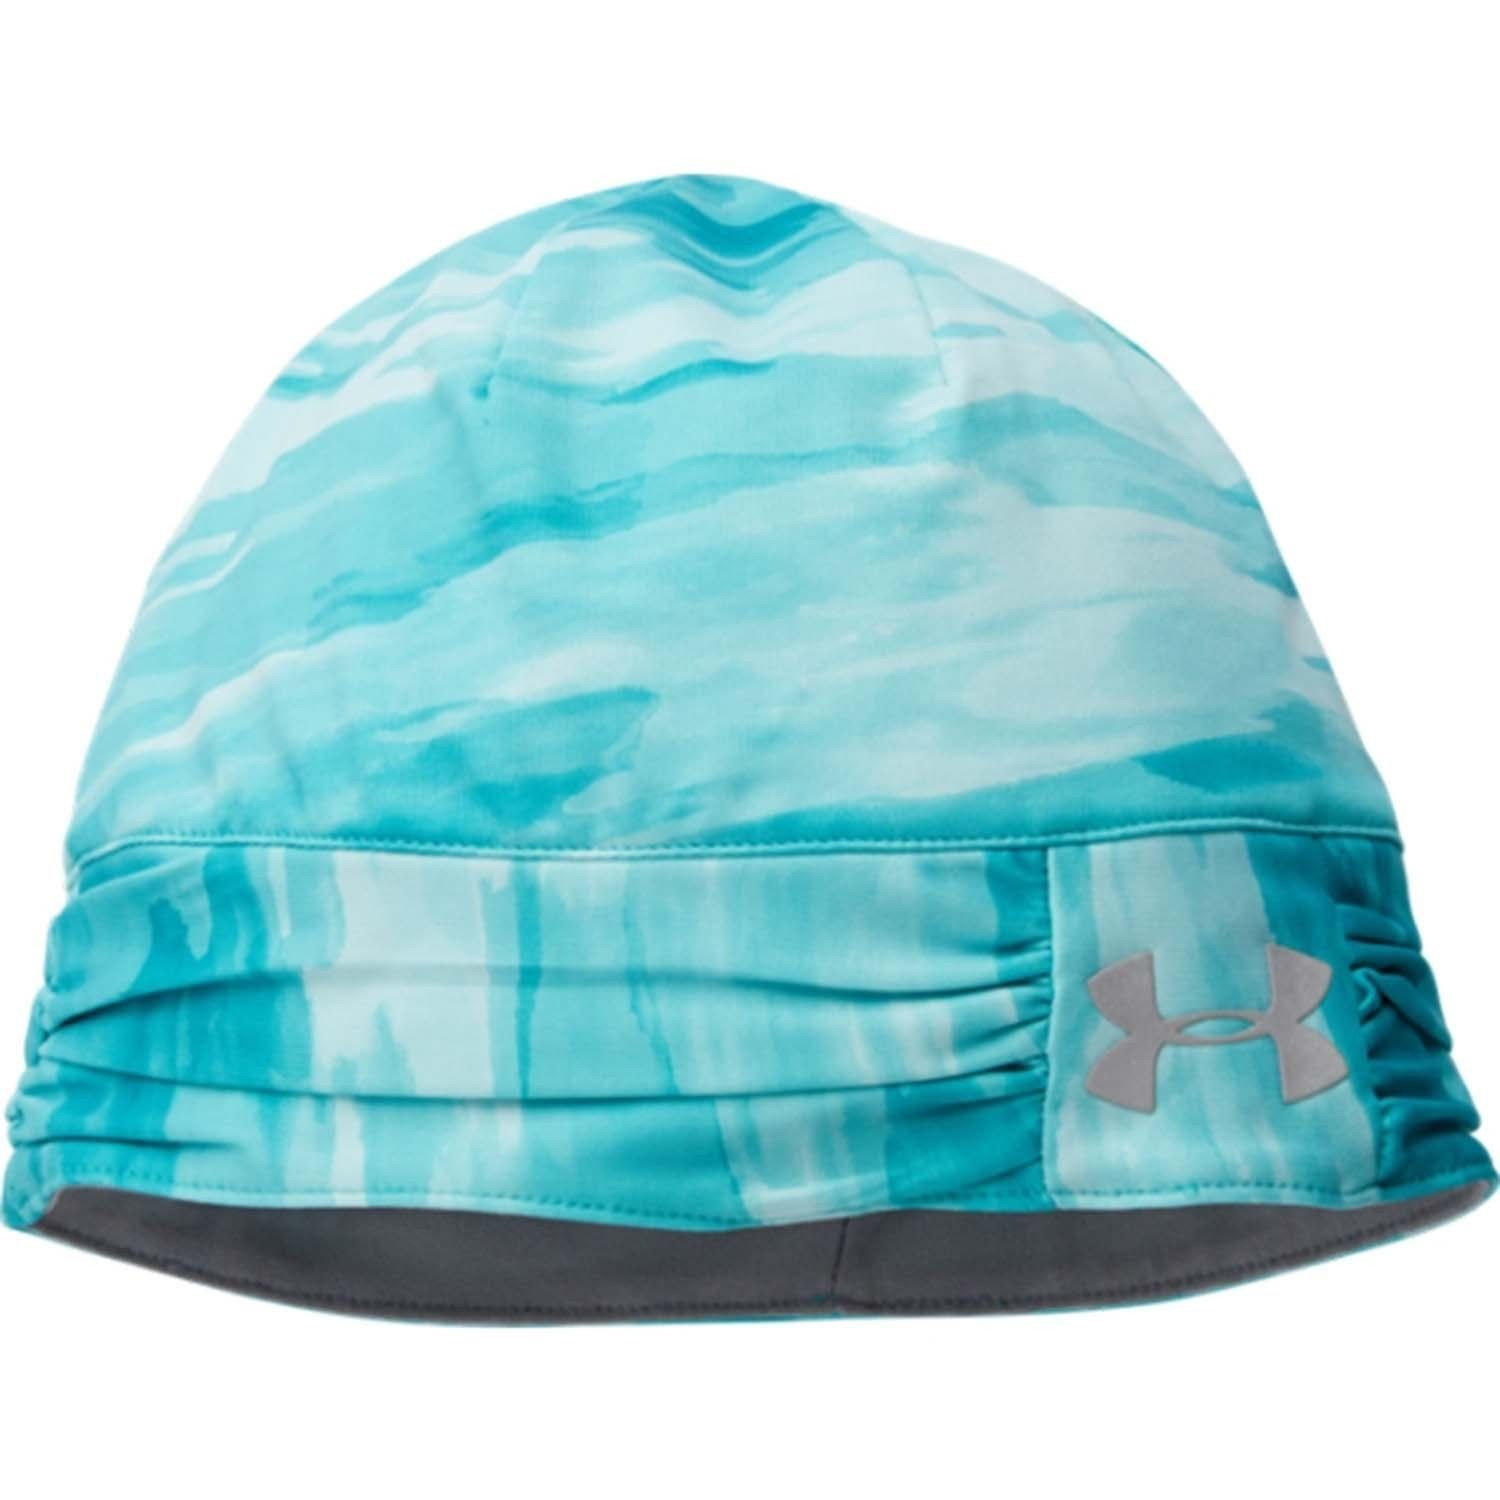 Under Armour Coldgear INFRARED Women's Aqueduct/Steel UA Cozy Beanie Hat (One Size)